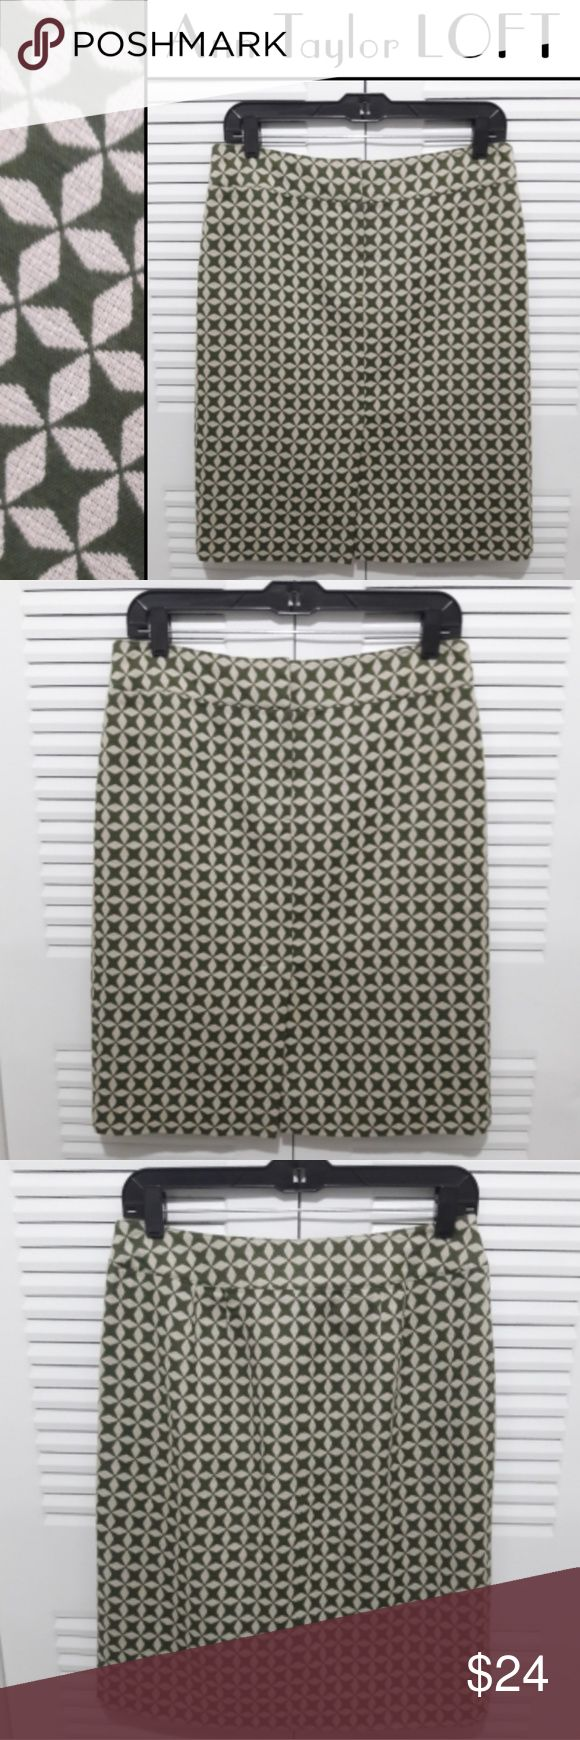 "LOFT Retro Geometric Jacquard Star Pencil Skirt 🌟Fabulous & Bold🌟Ann Taylor LOFT Geometric Star Designed Lined Pencil Skirt Size 8 * Excellent Condition * - Jacquard Cotton/Wool Blend - Army Green & Egg Shell Colors - Knee Length  - Sexy 8"" Front Bottom Slit - Measurements laying flat across Waist 15"" Hips 19"" Length 21.5"" ❤Bundle your likes from My Closet & SAVE❤ Ann Taylor Skirts Pencil"